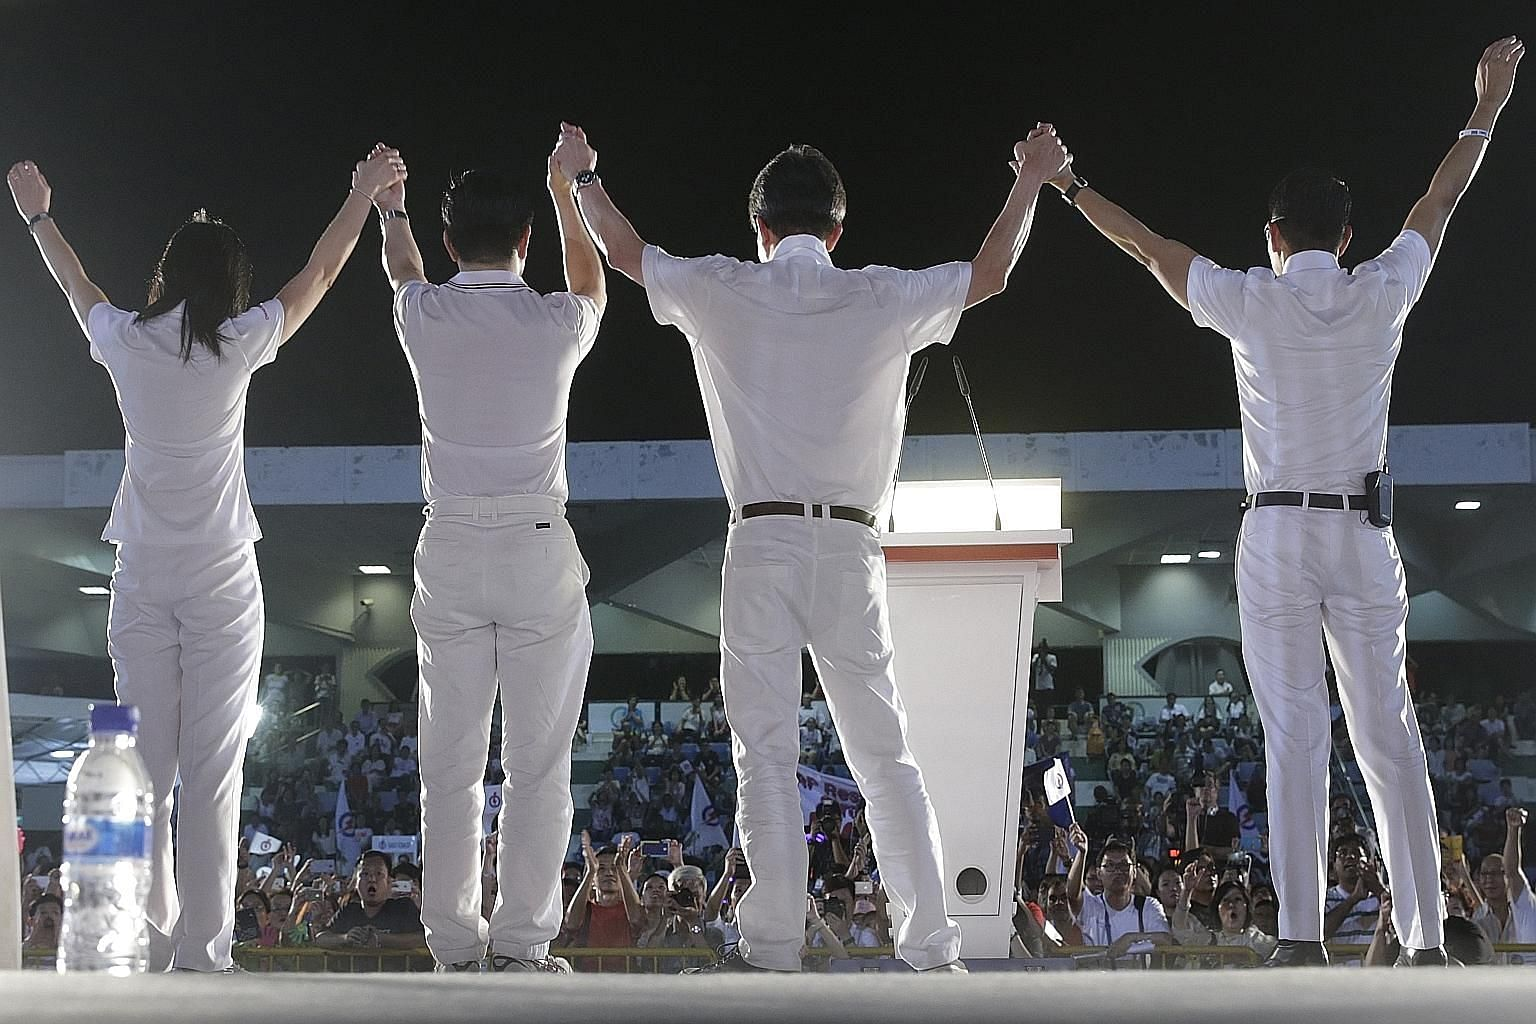 PAP East Coast GRC candidates (from left) Jessica Tan, Lee Yi Shyan, Lim Swee Say and Maliki Osman acknowledging the crowd after an election rally held at Bedok Stadium yesterday.